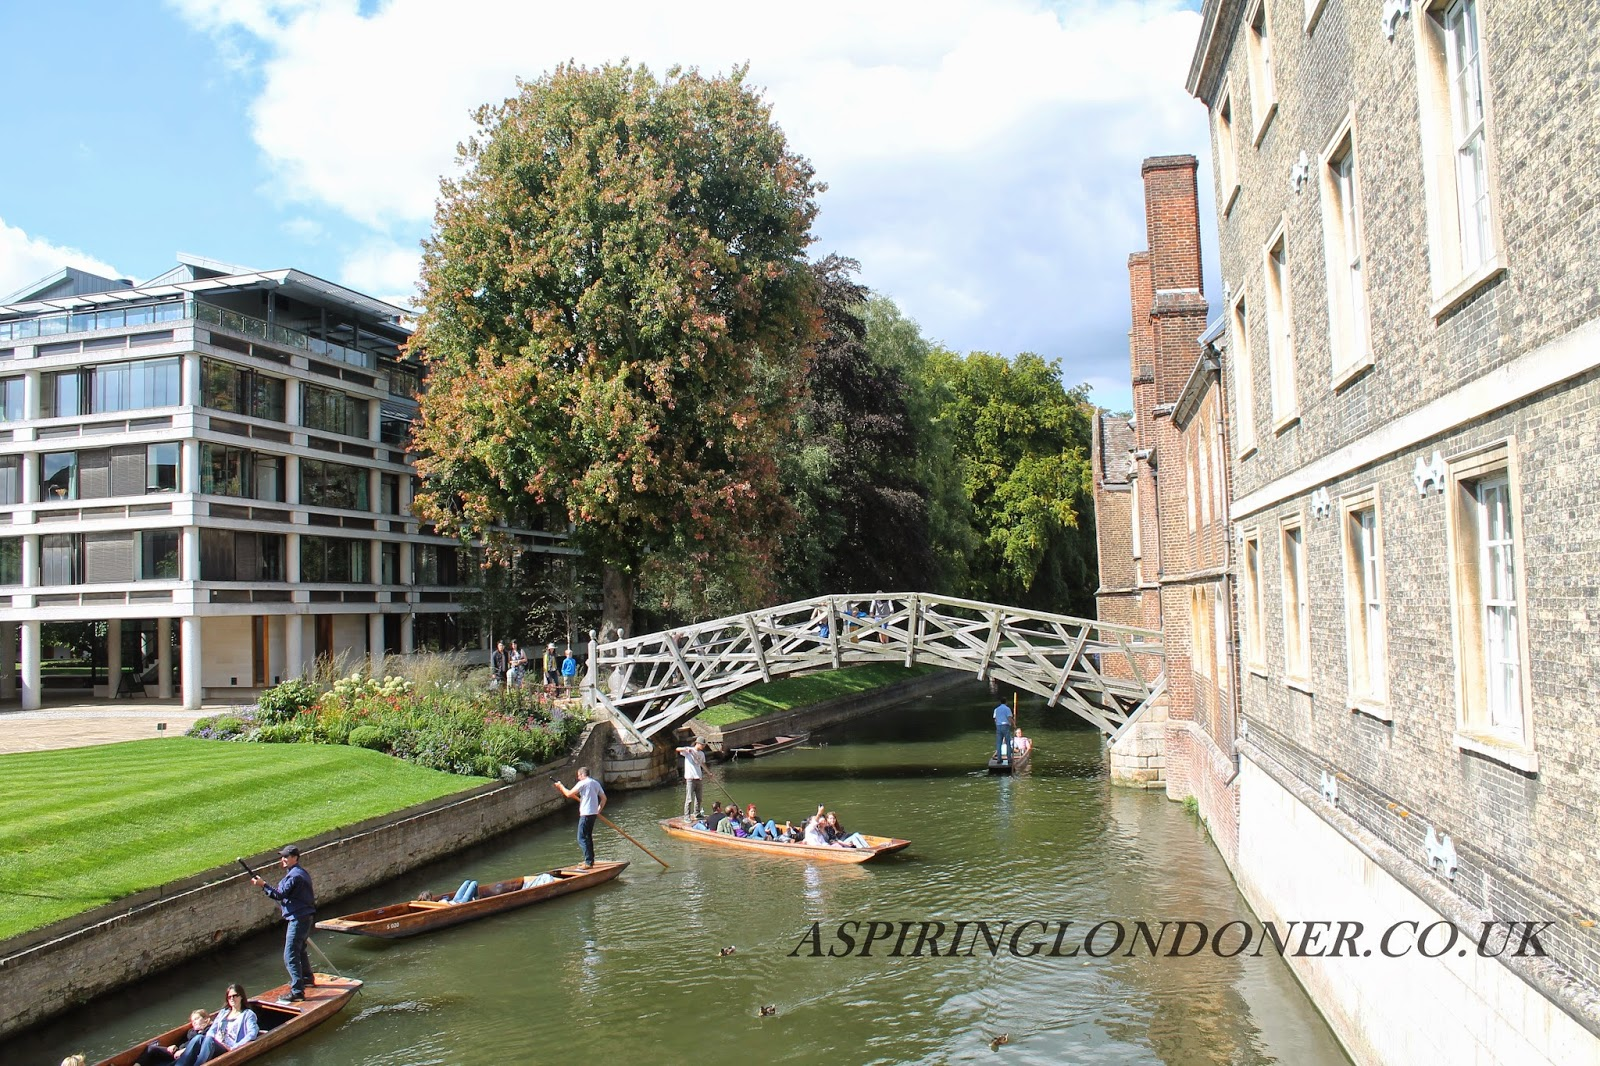 Mathematical Bridge on River Cam, Cambridge, UK - Aspiring Londoner